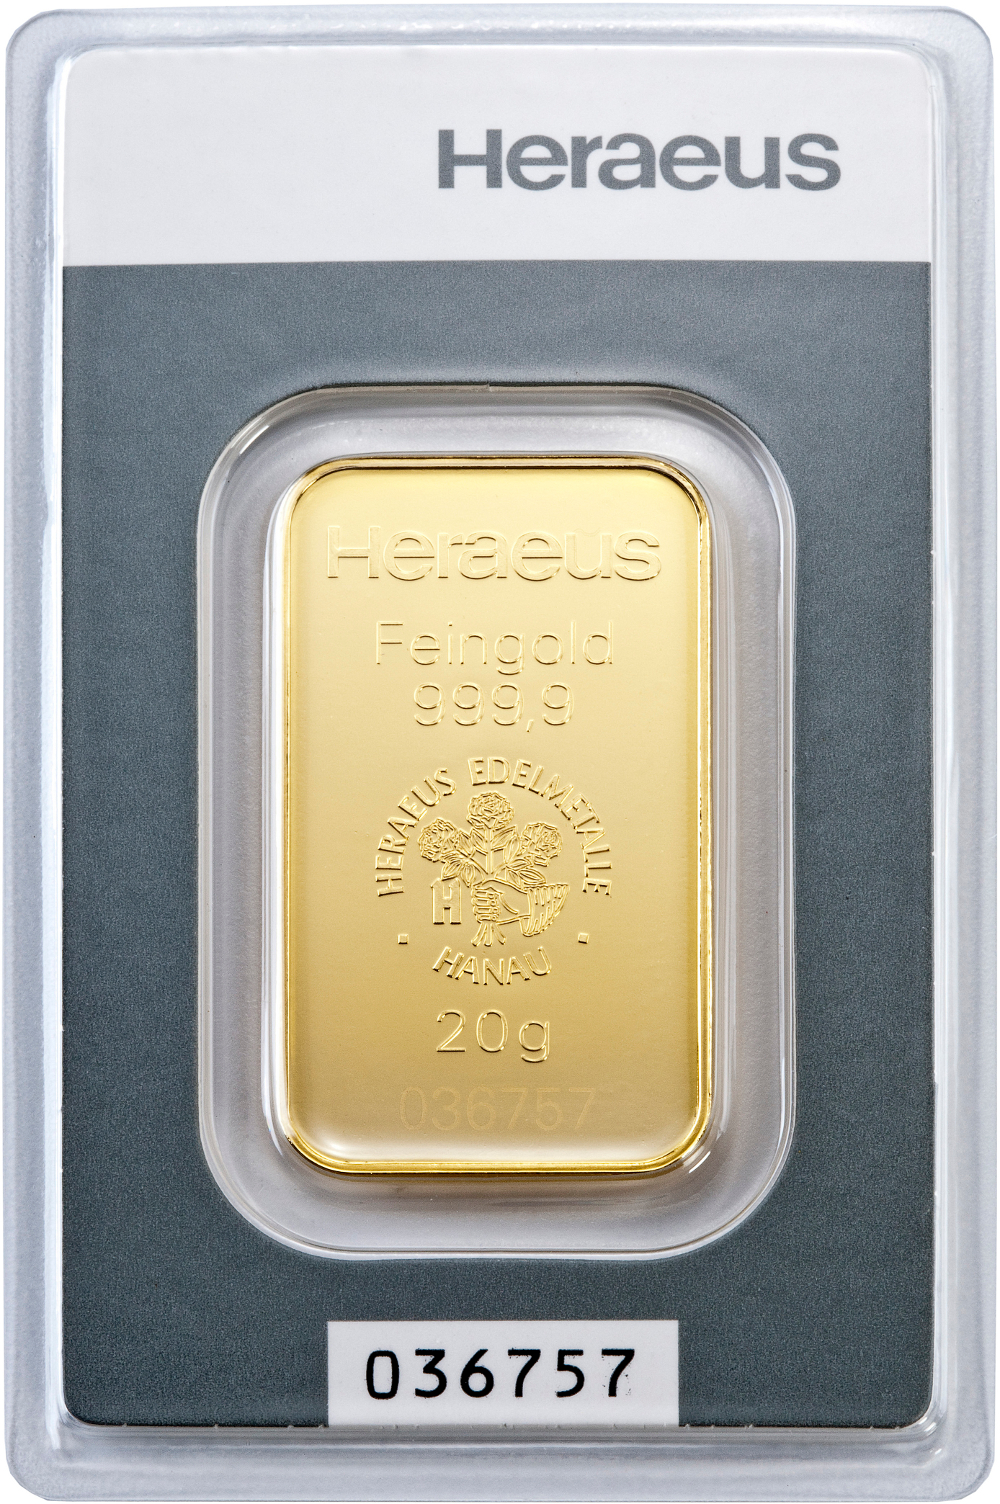 Heraeus 20g Gold Bars Bullionbypost From 163 663